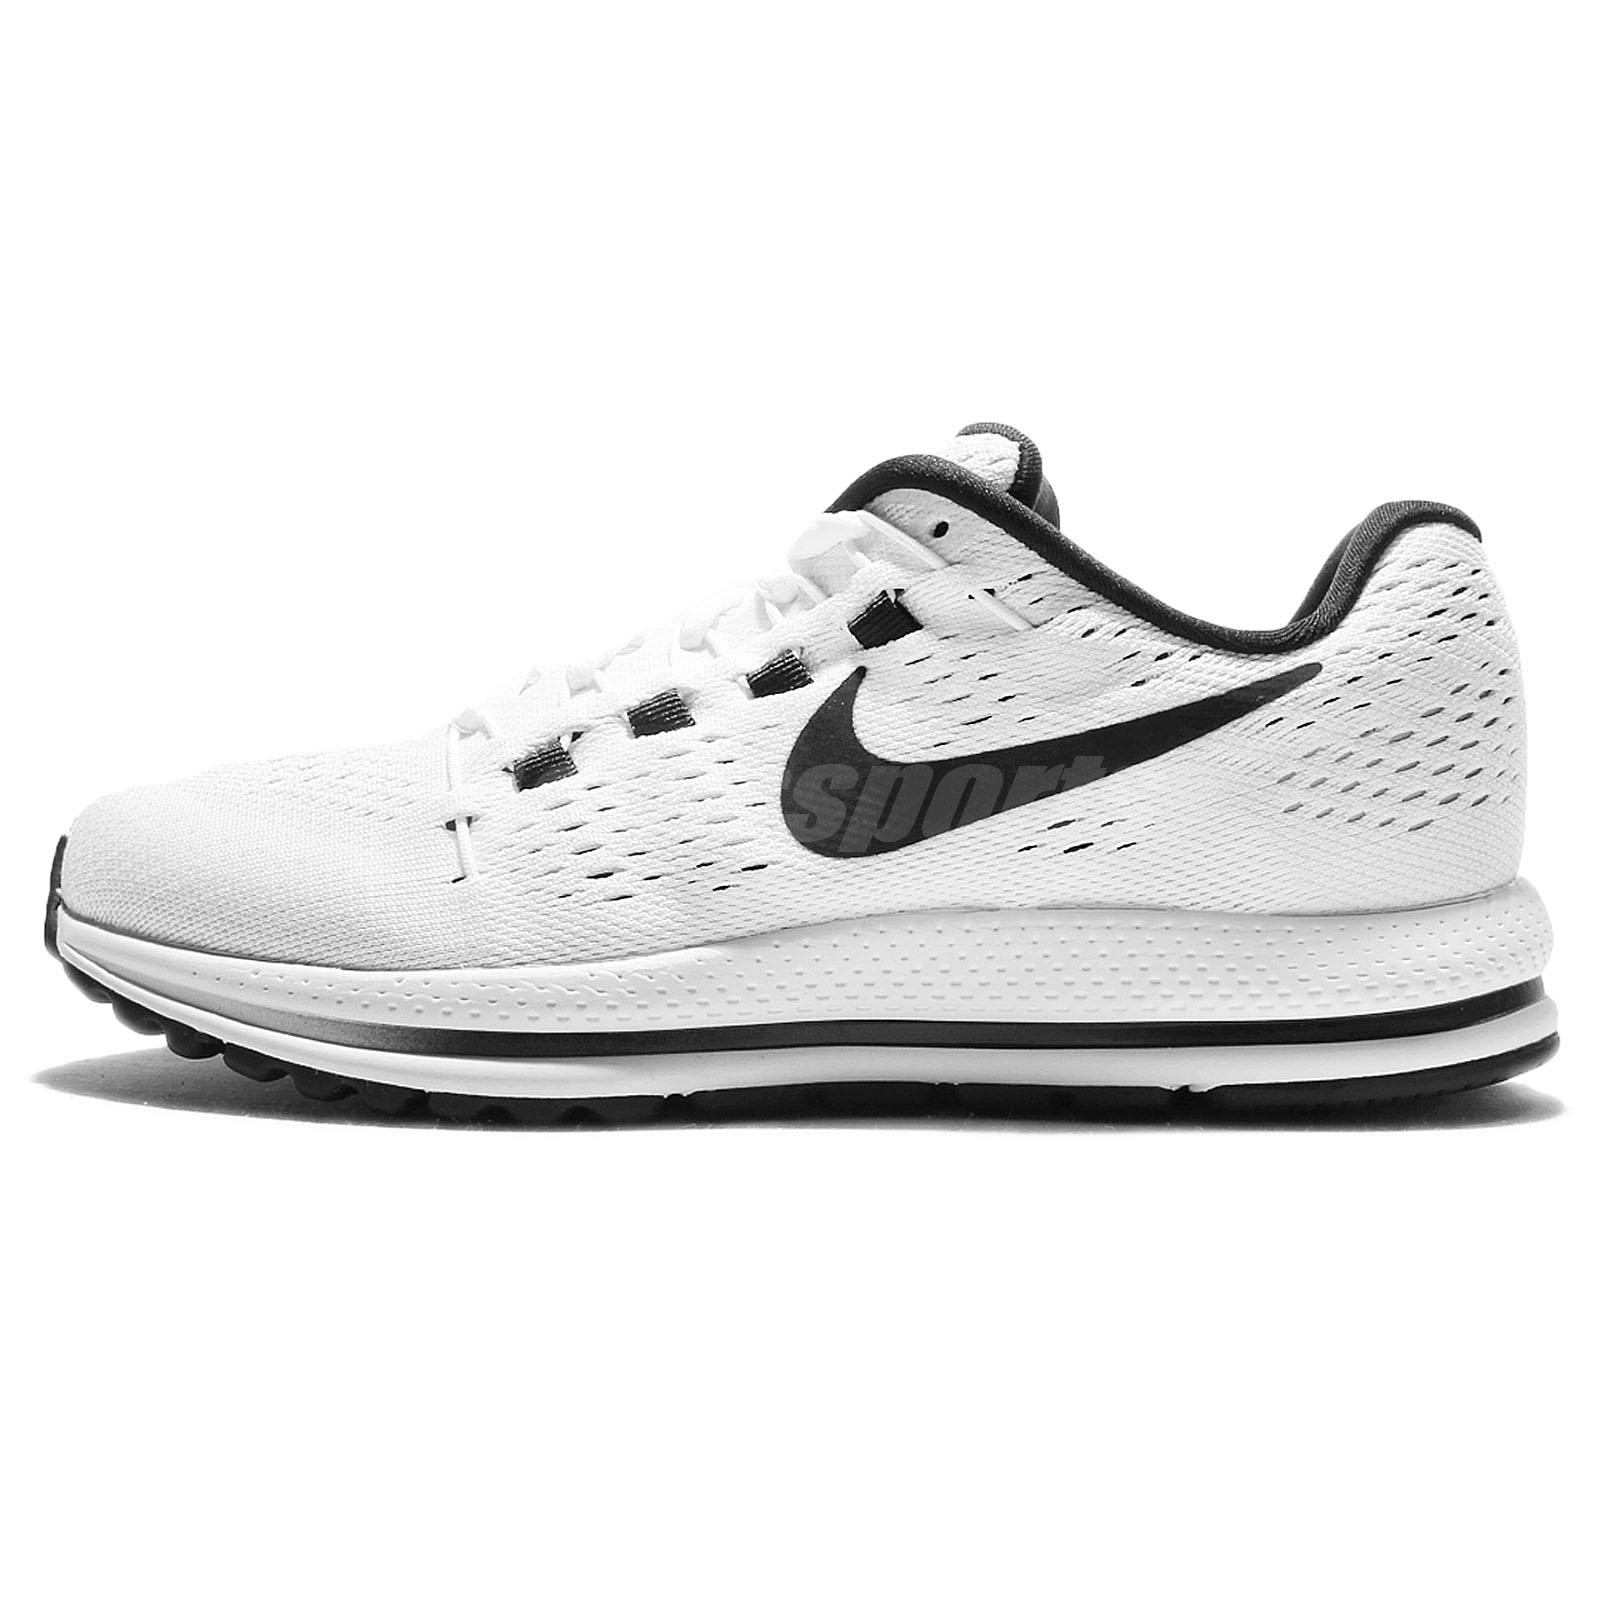 0d8a3631d05d Wmns Nike Air Zoom Vomero 12 White Black Womens Running Shoes 863766 ...